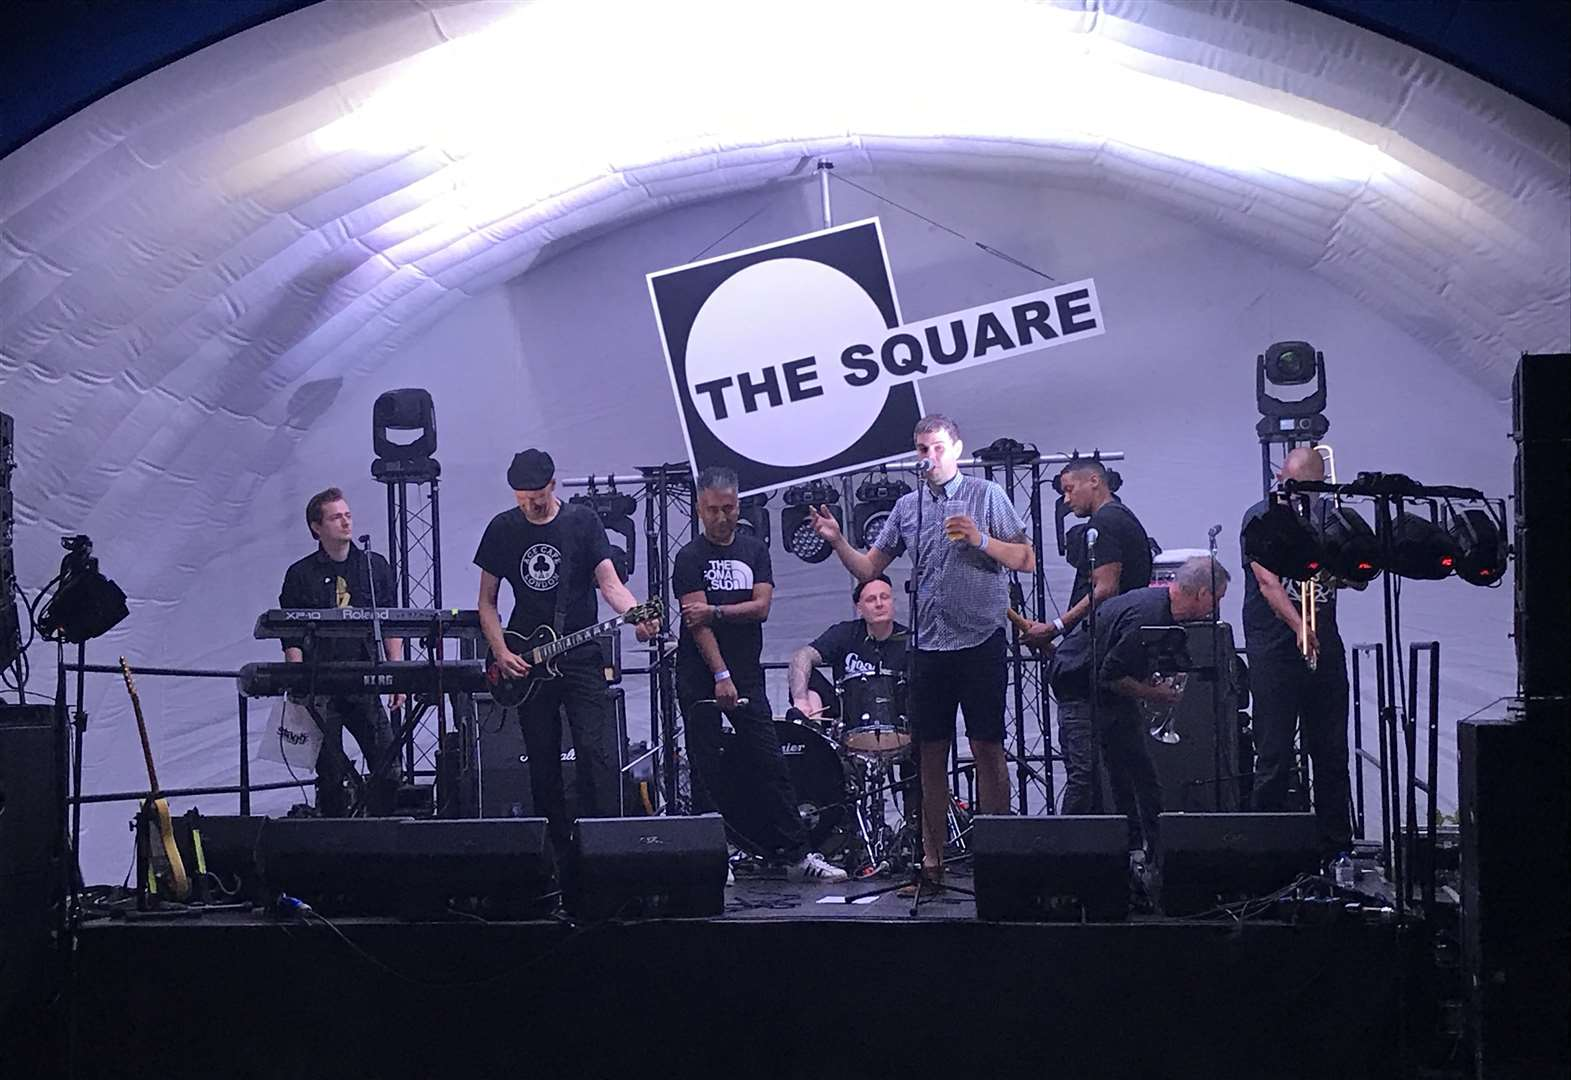 The Square's summer reunion party is an out-of-venue experience